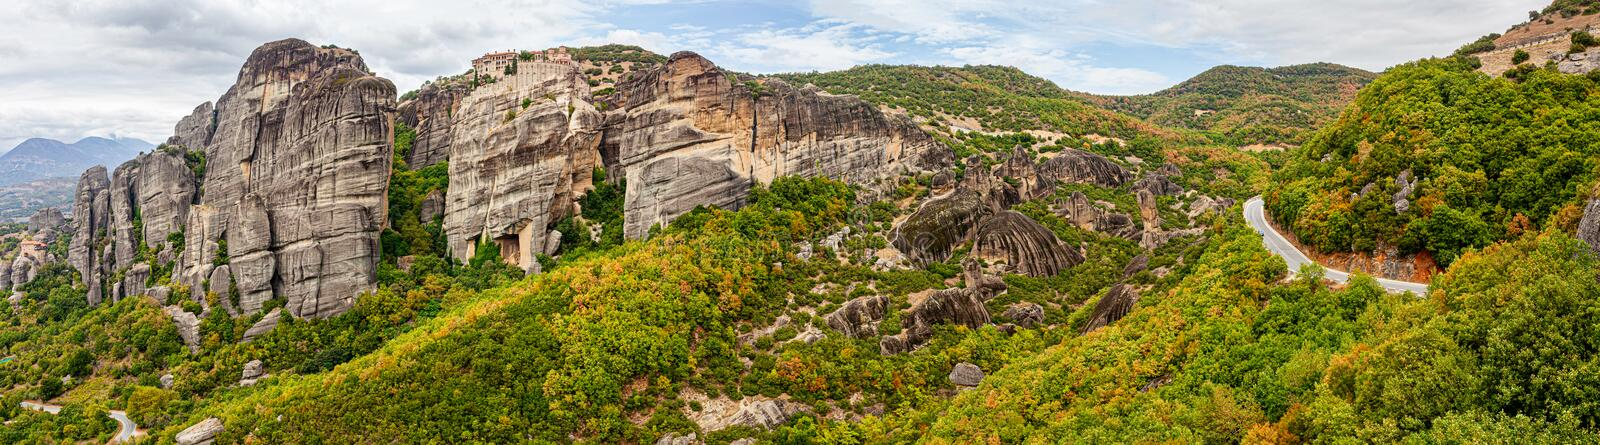 Beautiful summer landscape of Meteora, Greece royalty free stock images